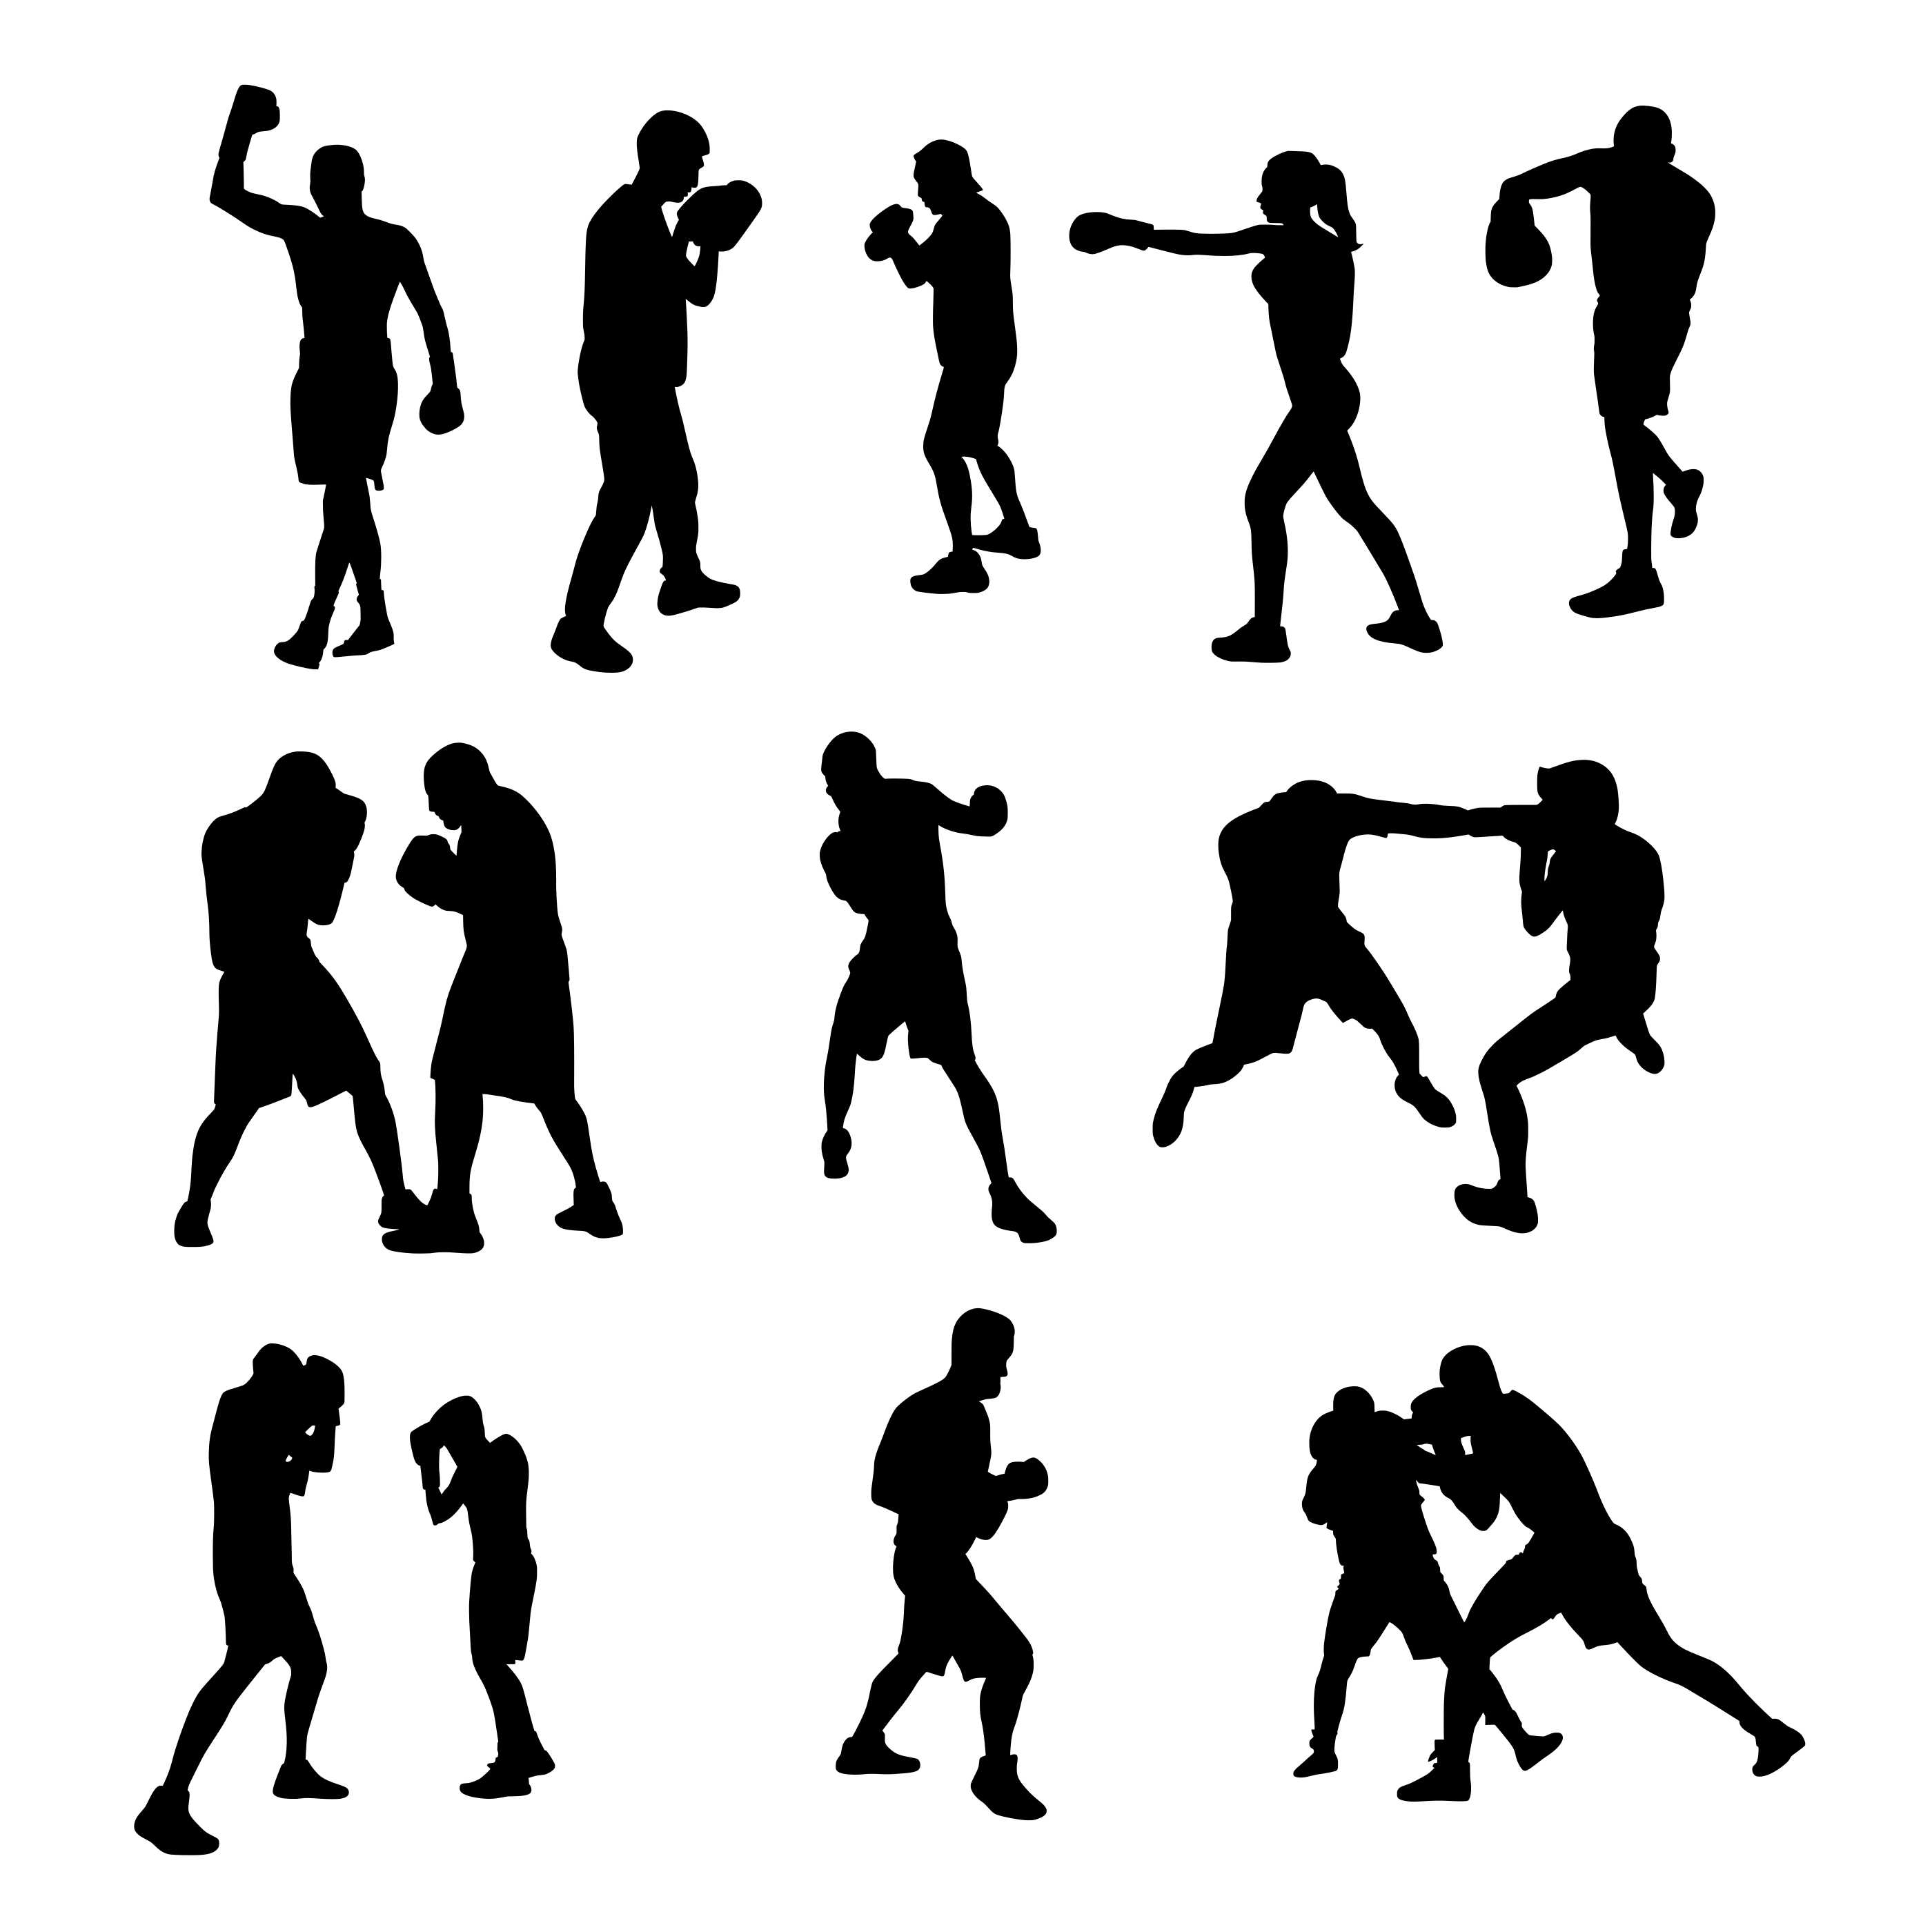 10-boxing-silhouette-cover.jpg